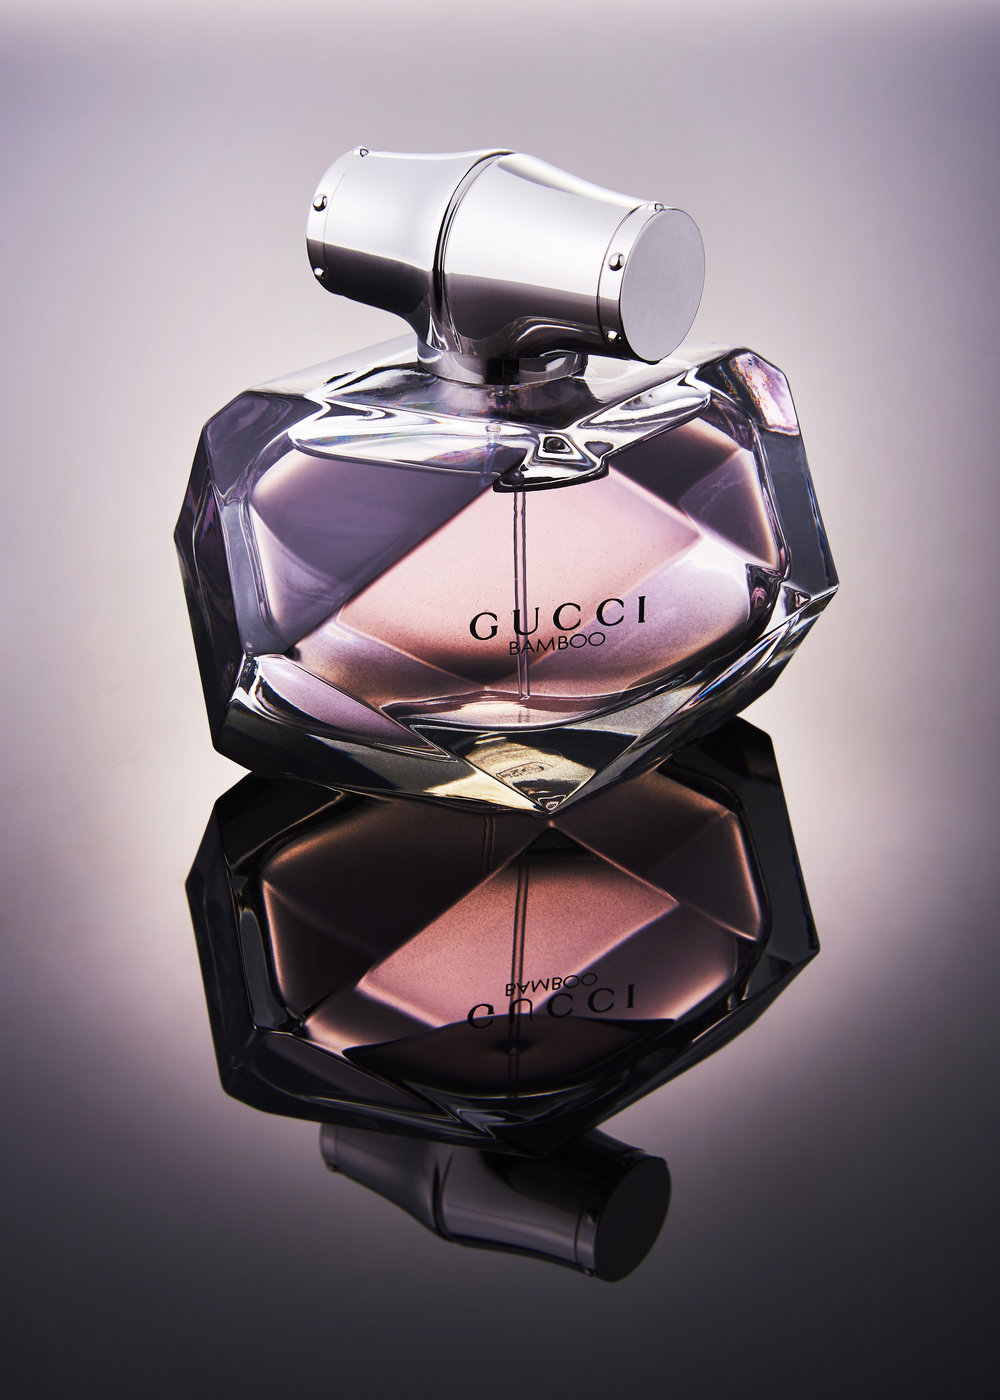 GucciPerfume copy.jpg